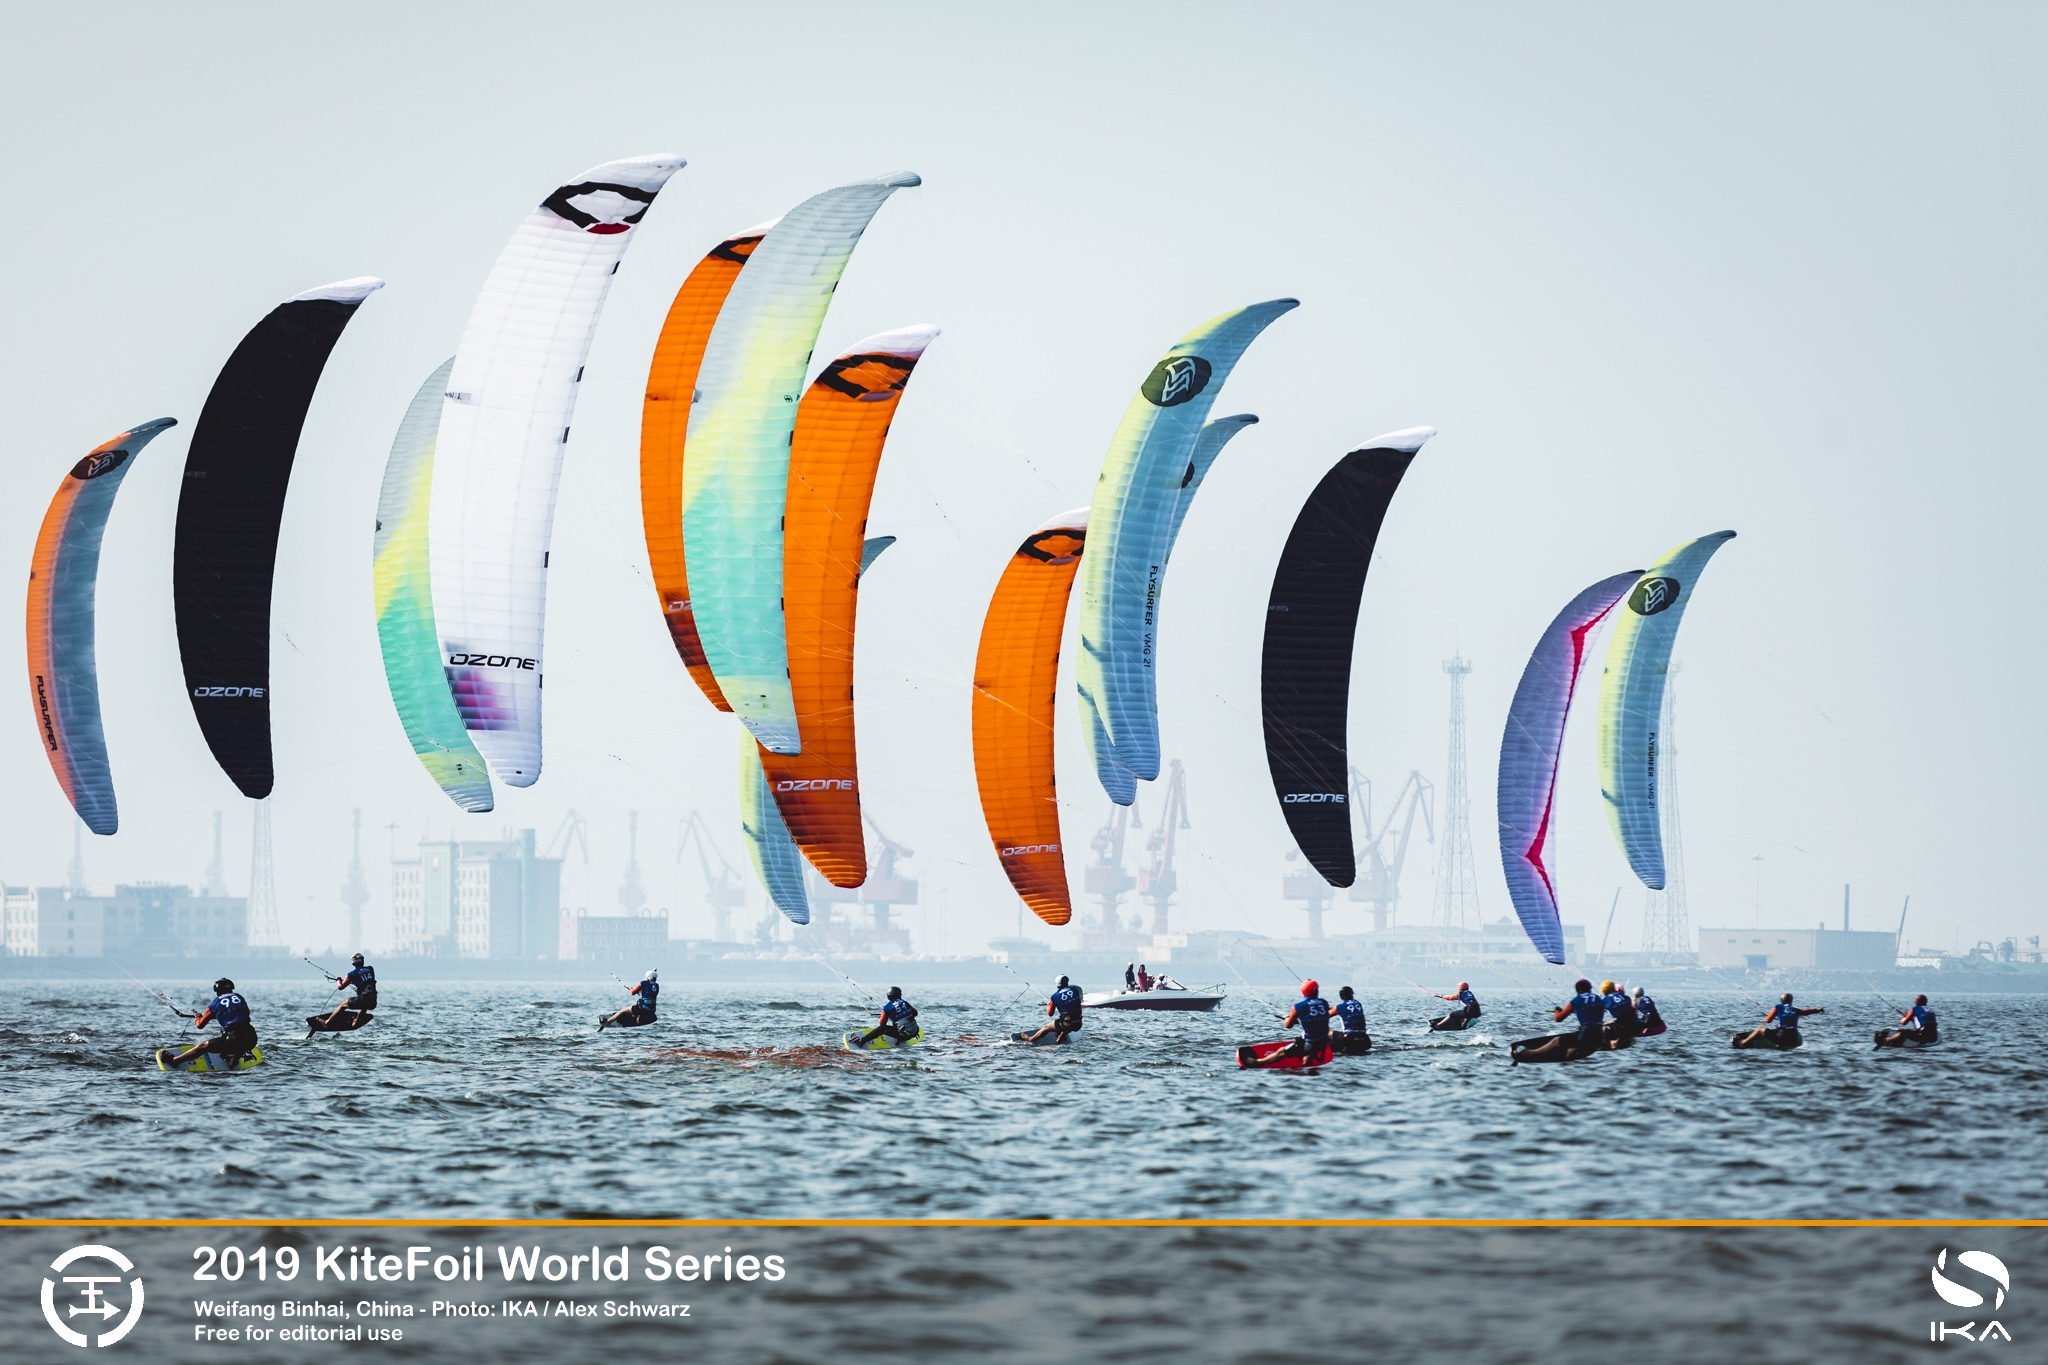 Kitefoil World Series' leader surges to top after slow start in China